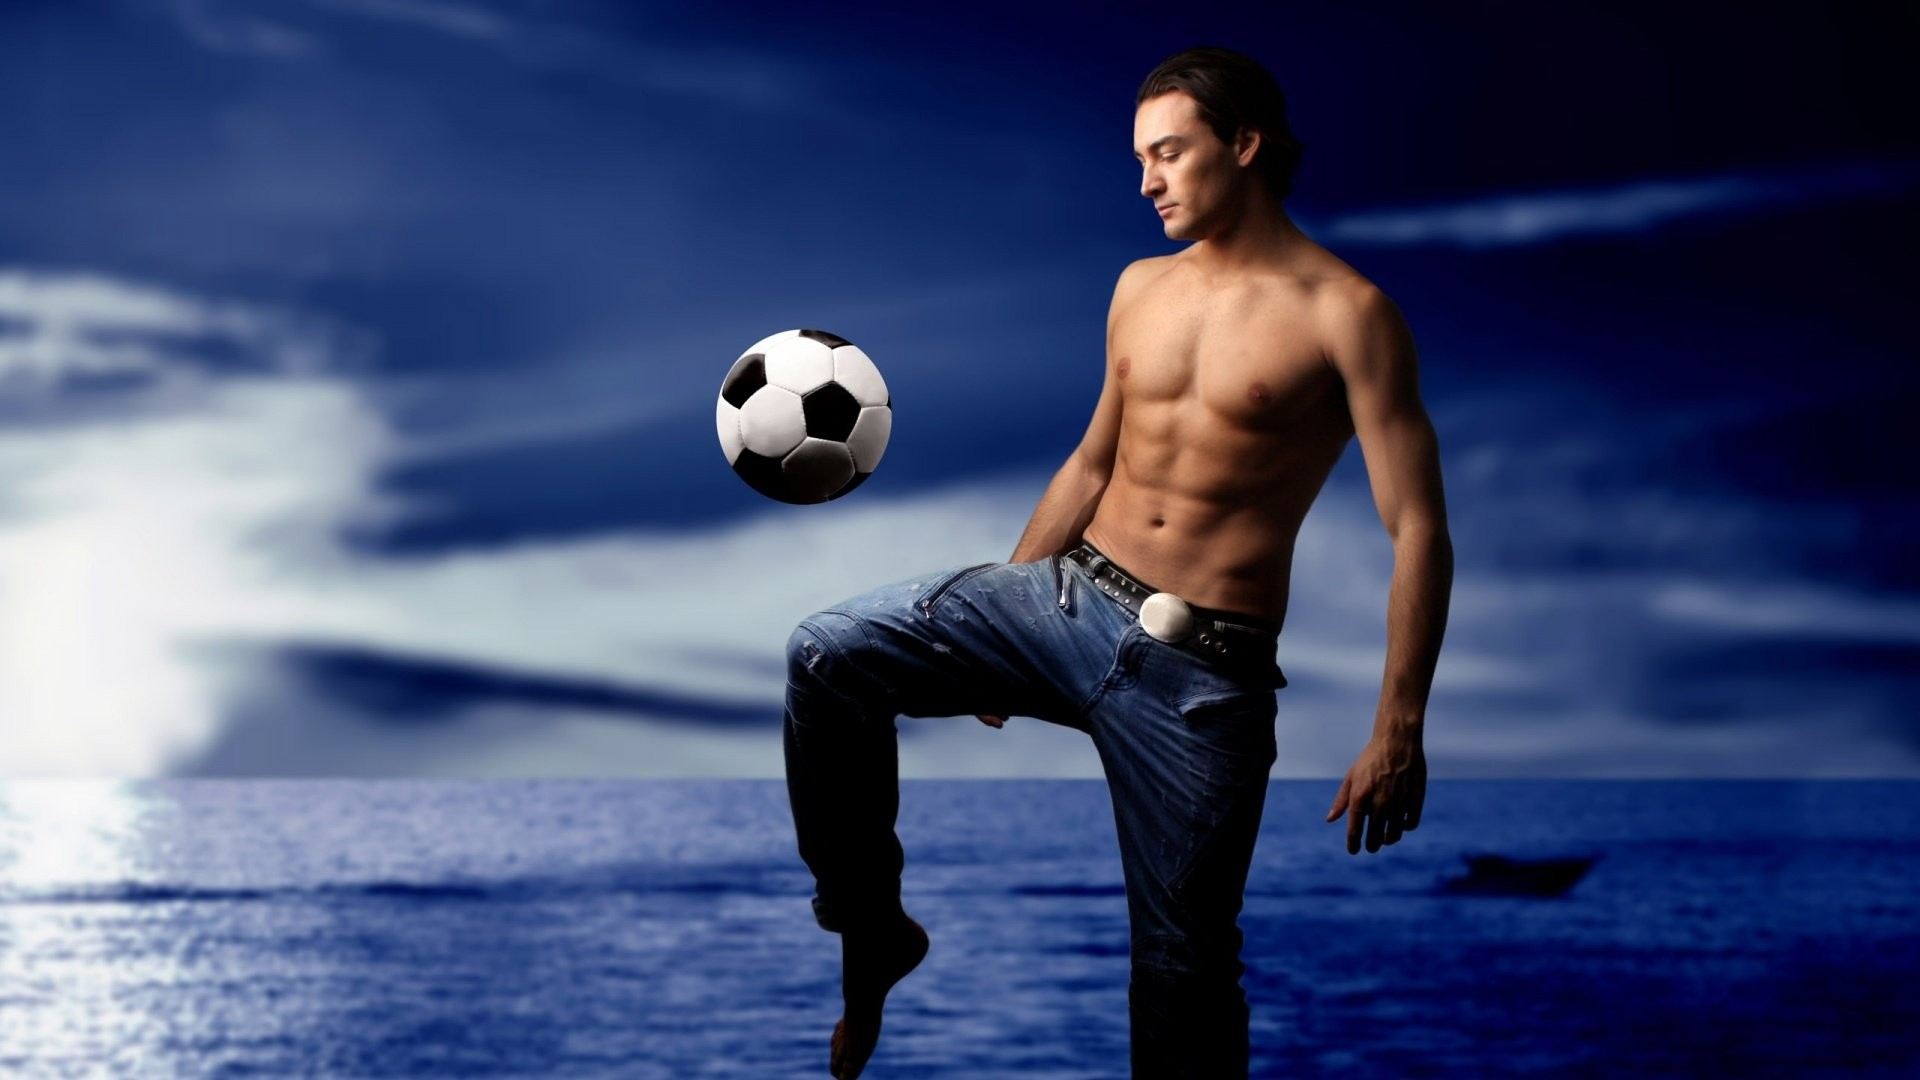 1920x1080 Guy Bouncing A Soccer Ball